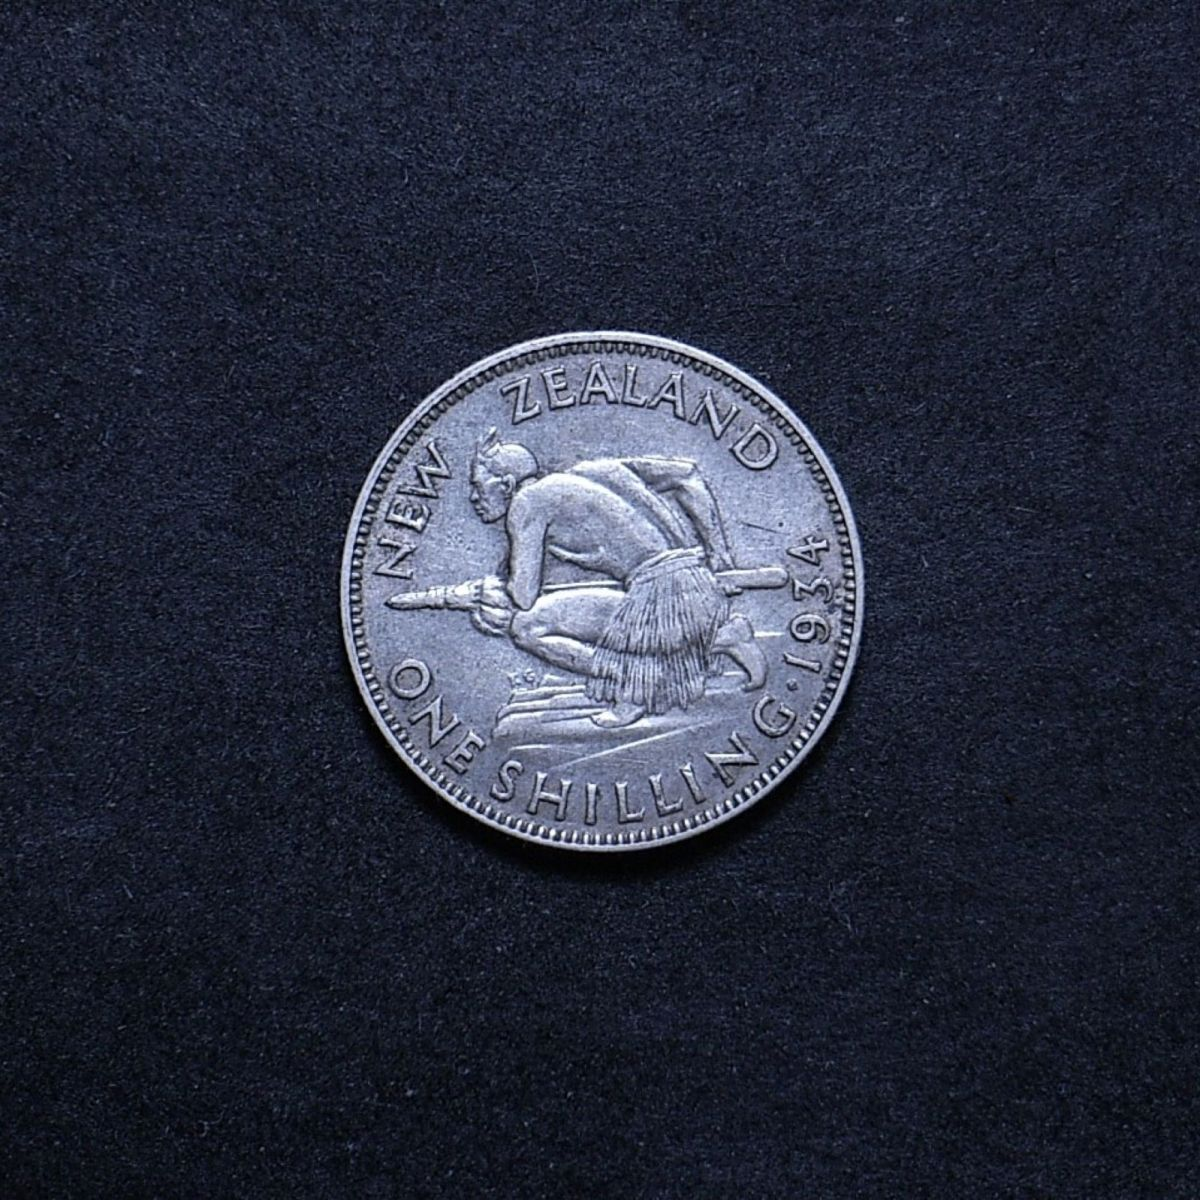 NZ Shilling 1934 reverse showing overall appearance